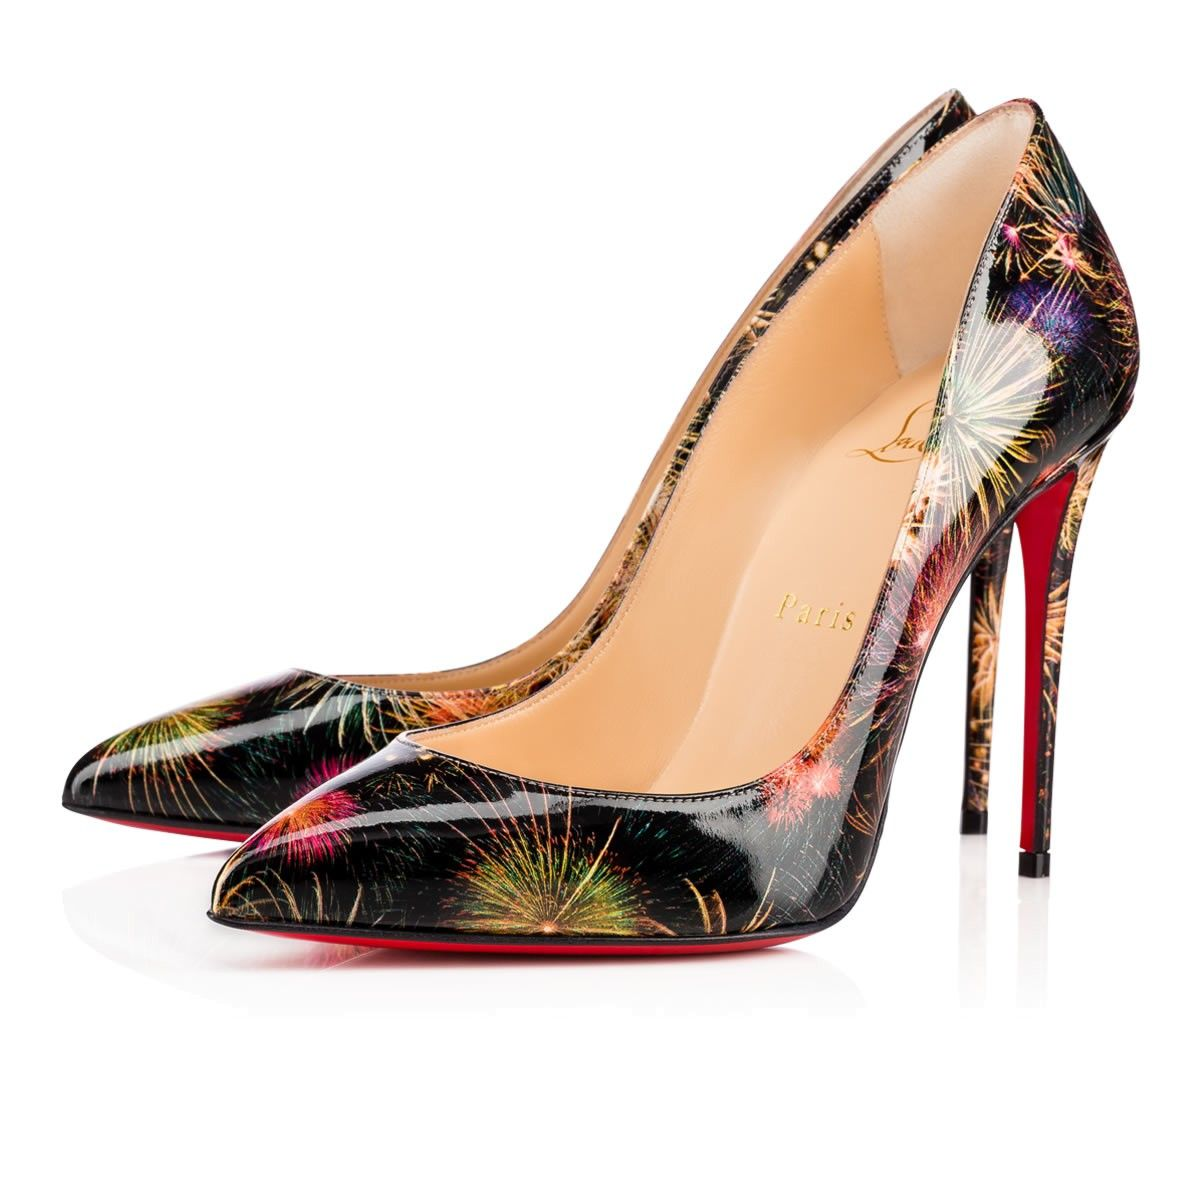 cb91379c7b3 CHRISTIAN LOUBOUTIN Pigalle Follies Patent Fireworks 100 Multicolor ...